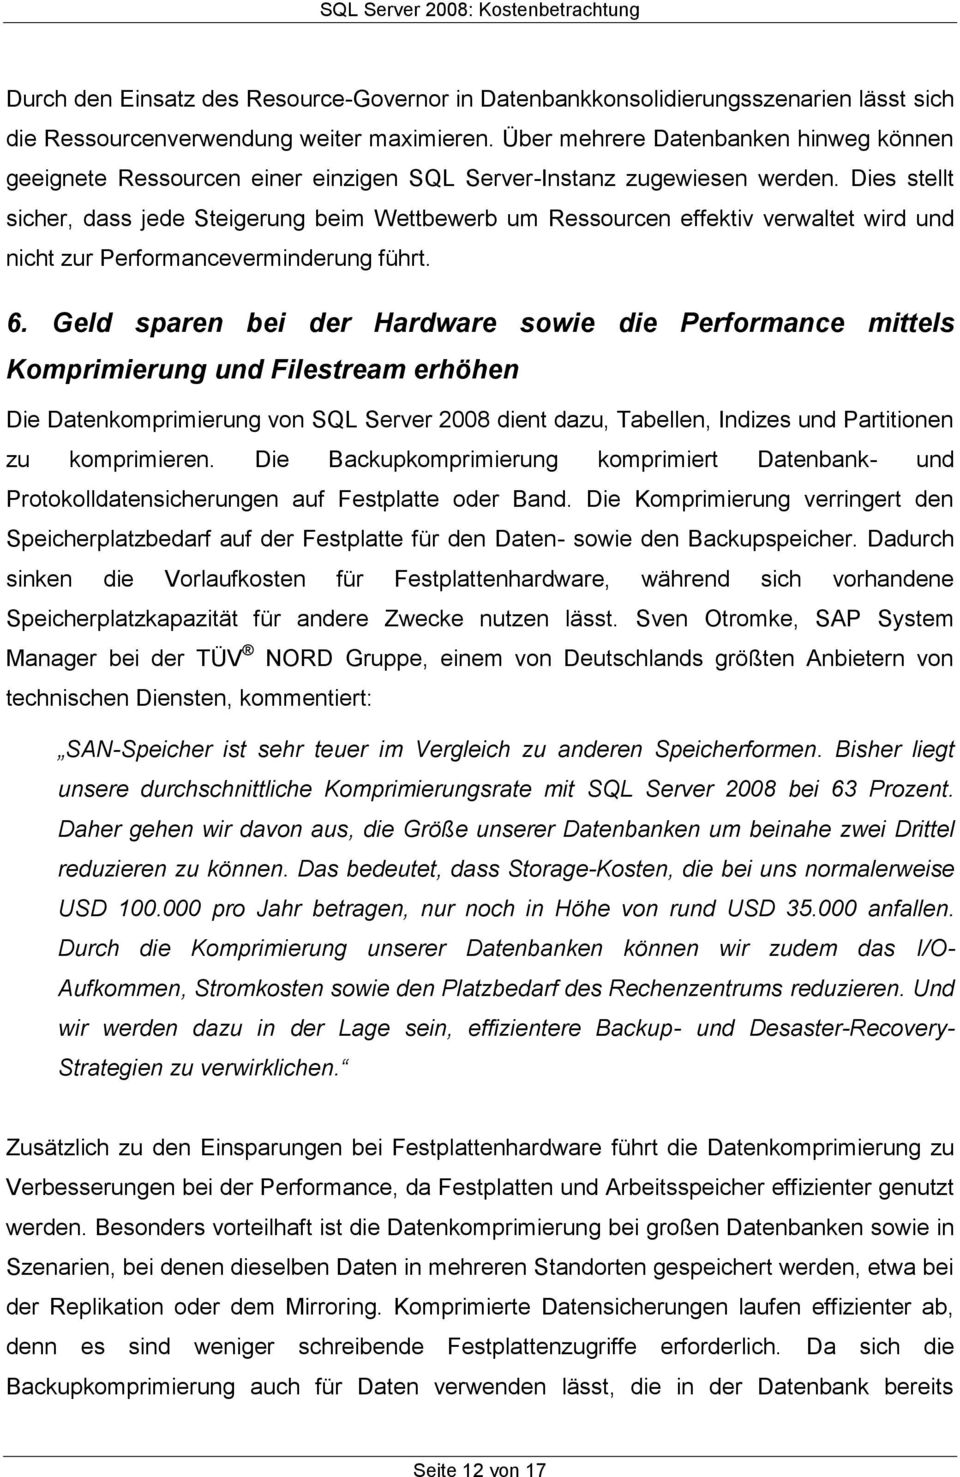 Niedlich Helpdesk Richtlinienvorlage Ideen - Entry Level Resume ...